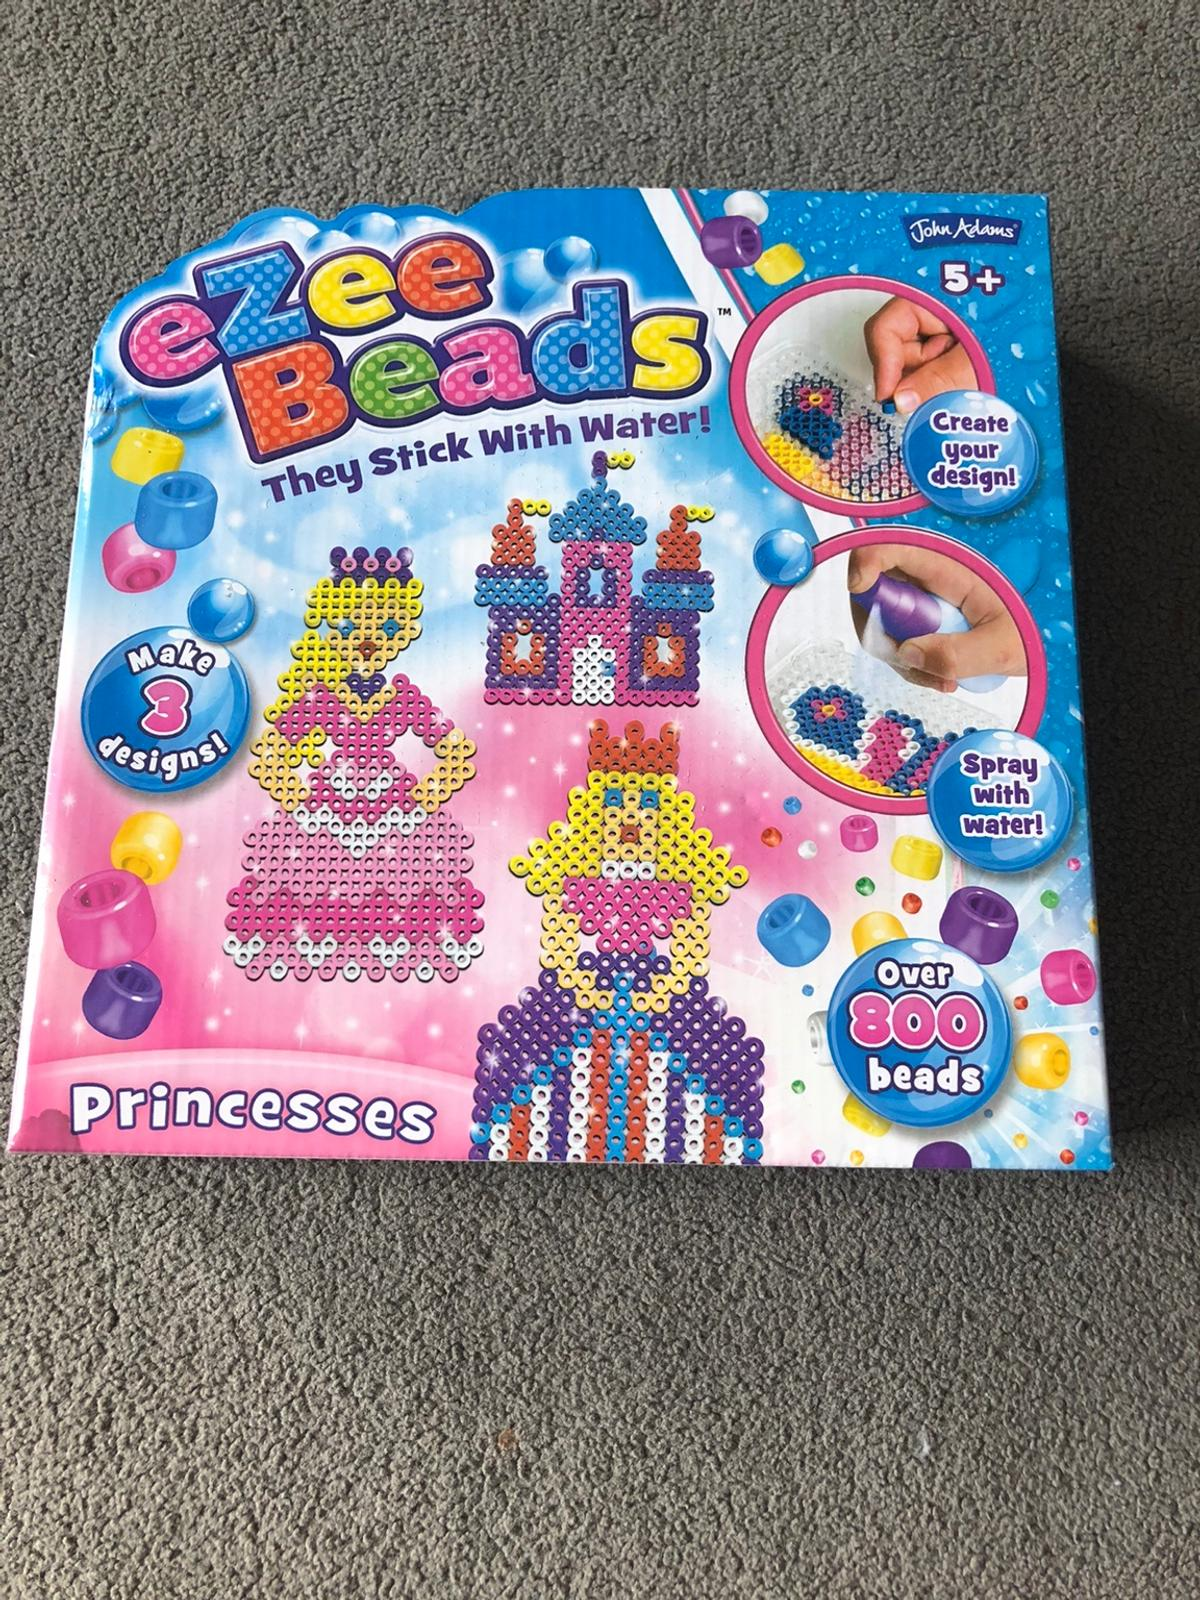 Brand new never been opened eZee Beads set. Only selling as my daughter prefers a different style. Smoke free and pet free home. Collection only. £8 ONO